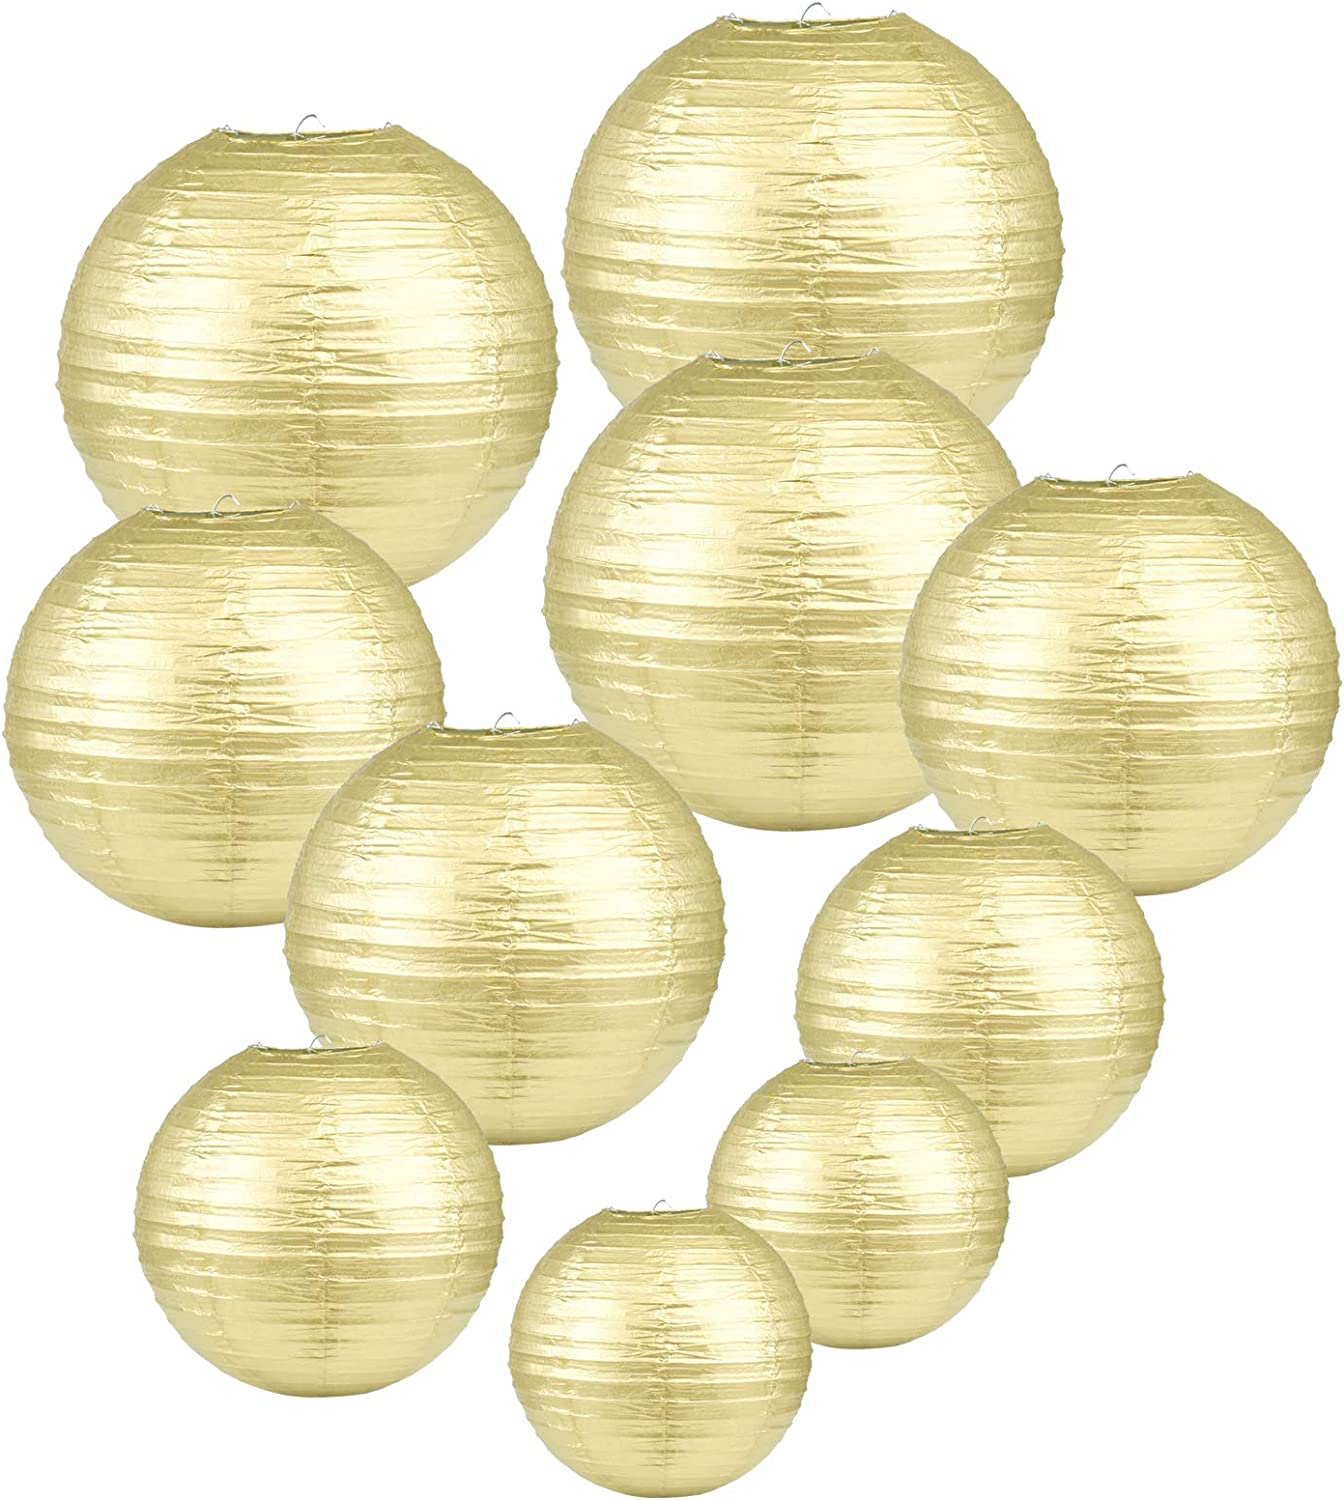 LIHAO 10x Mixed Size Gold Paper Lanterns for Weddings, Birthdays, Parties and Events